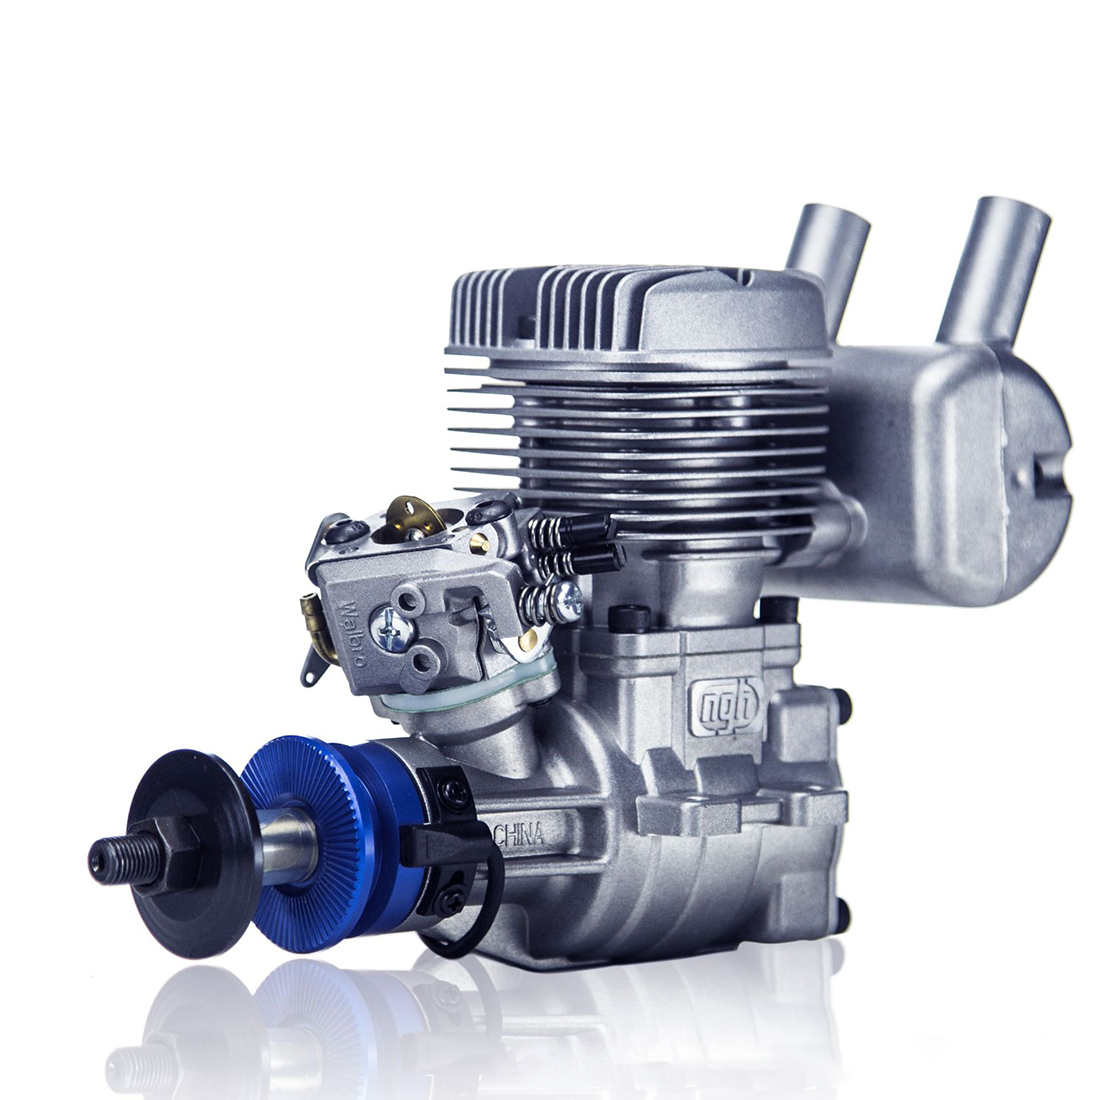 Ngh GT35R 35cc Single-Cylinder Two Stroke Air Cooled Gasoline Engine For Fixed Wing Drone